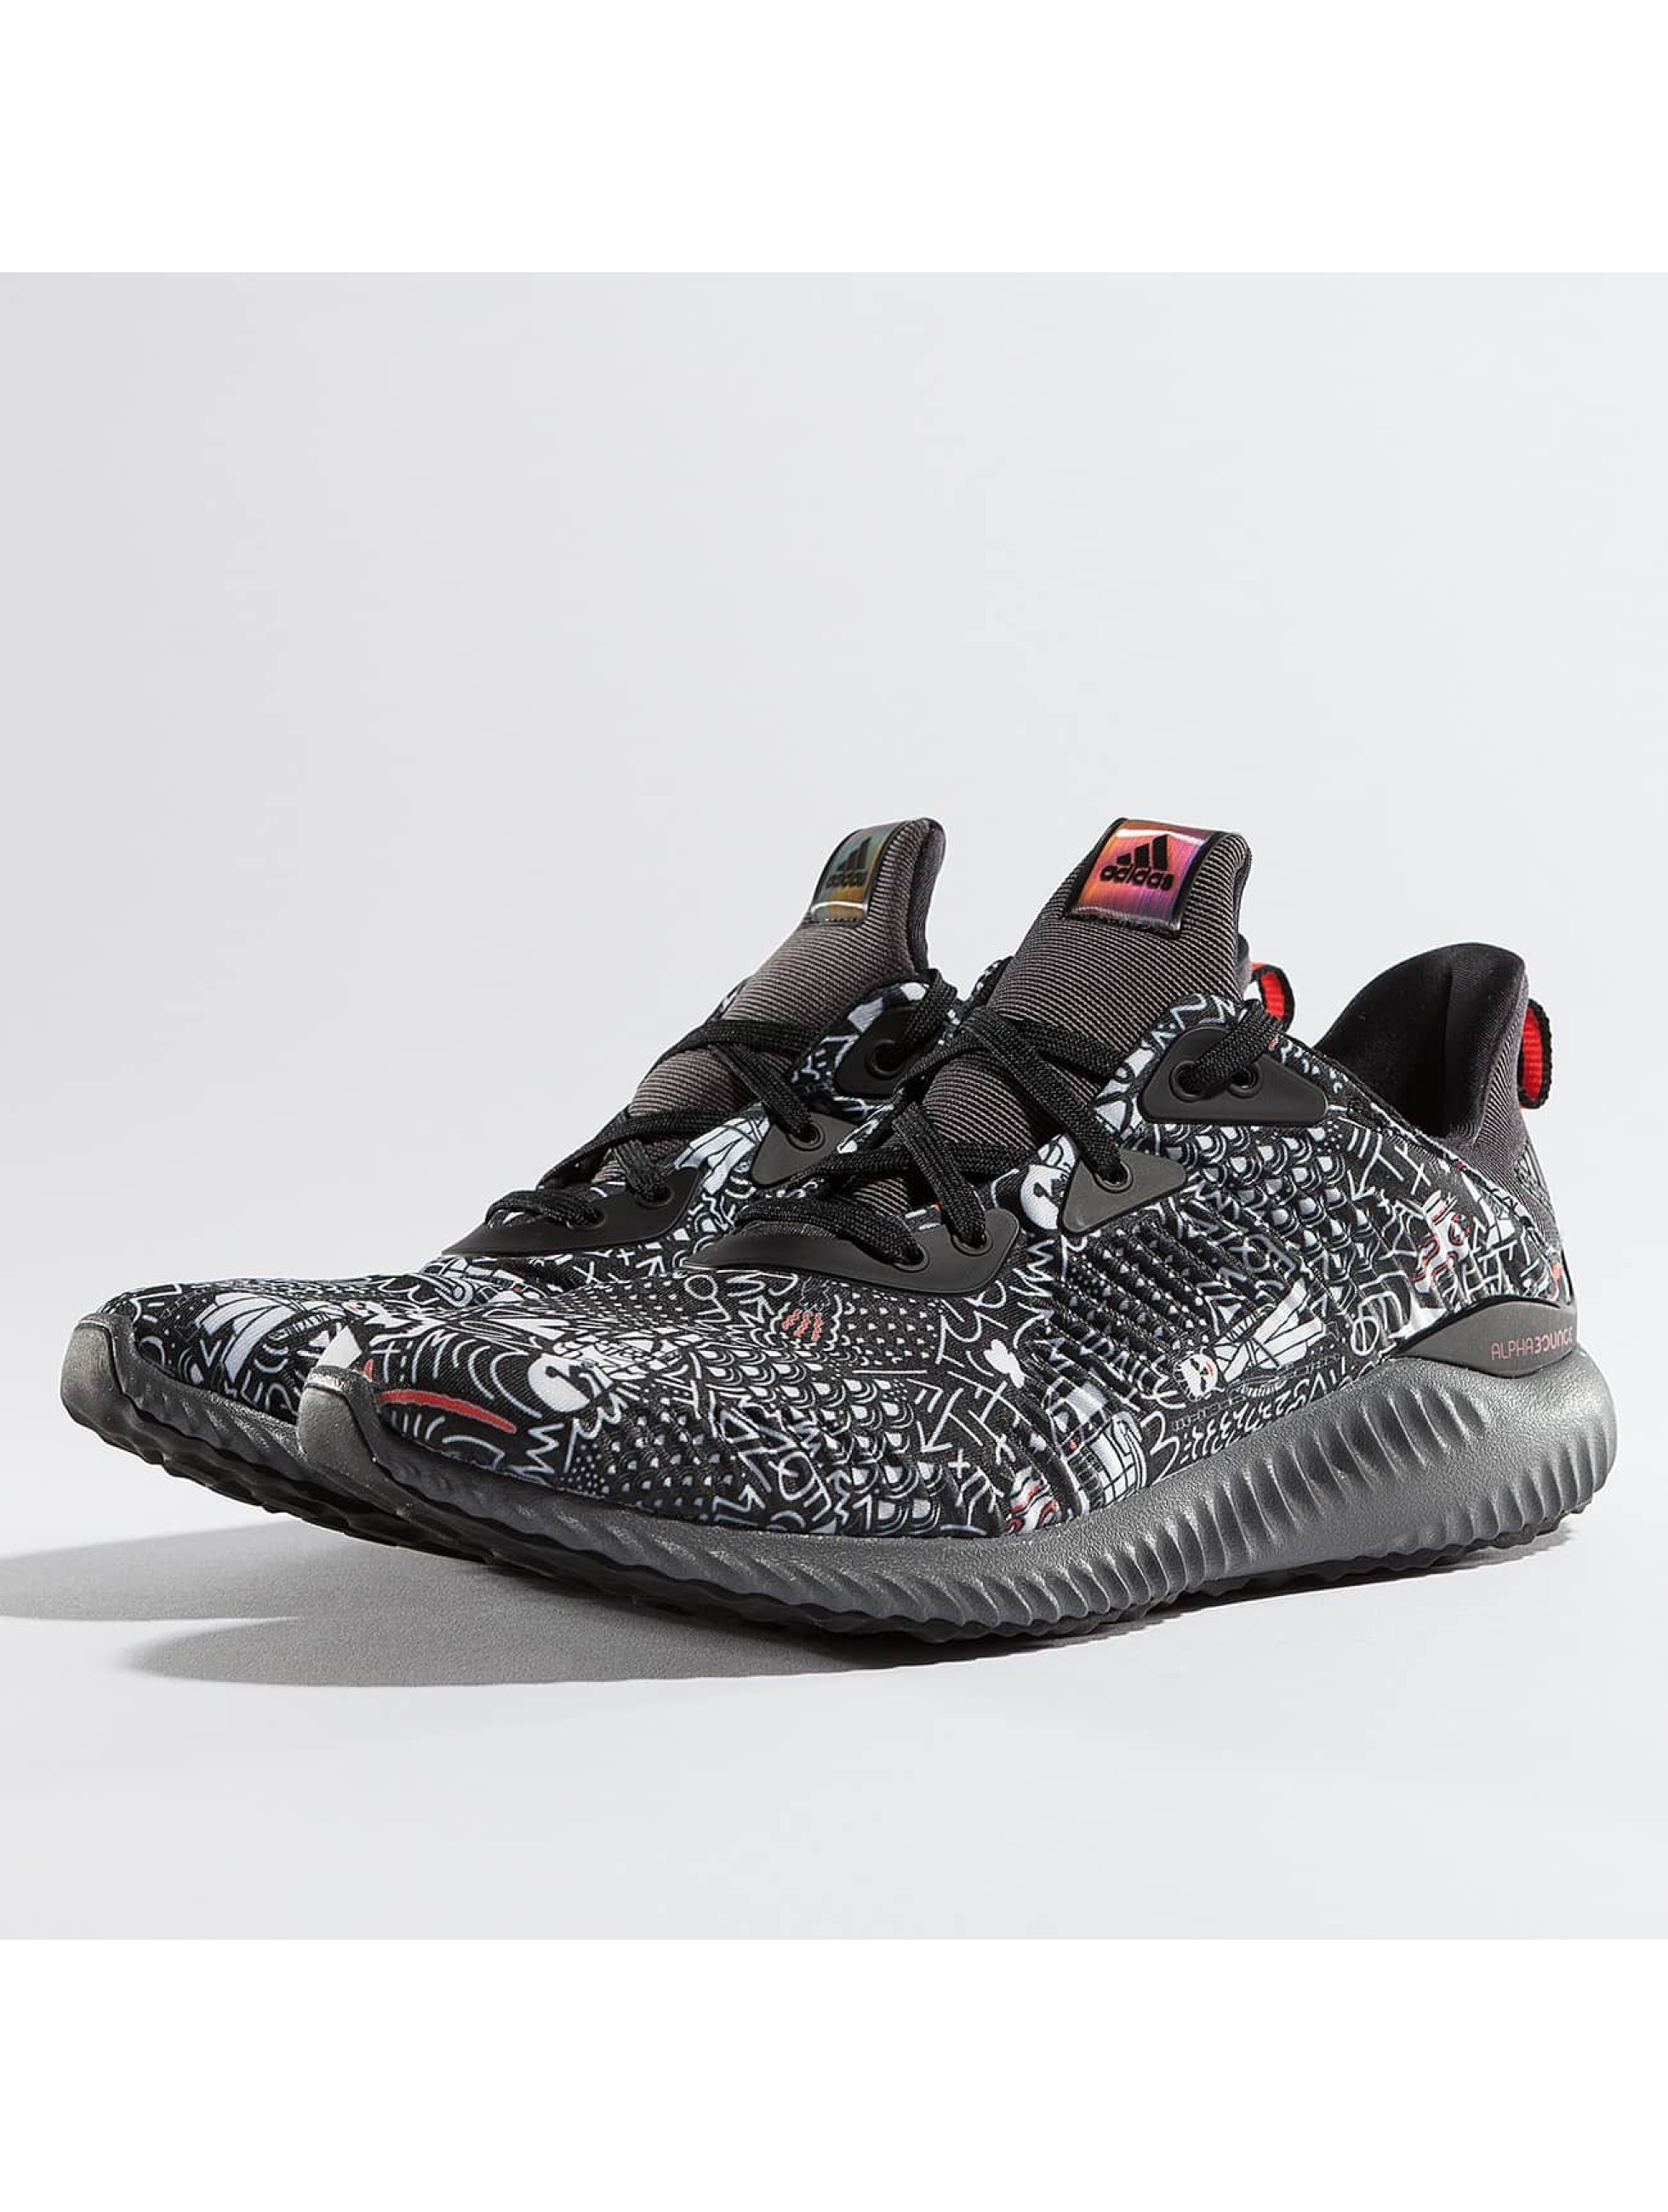 adidas Performance Frauen Sneaker Alphabounce StarWars in schwarz